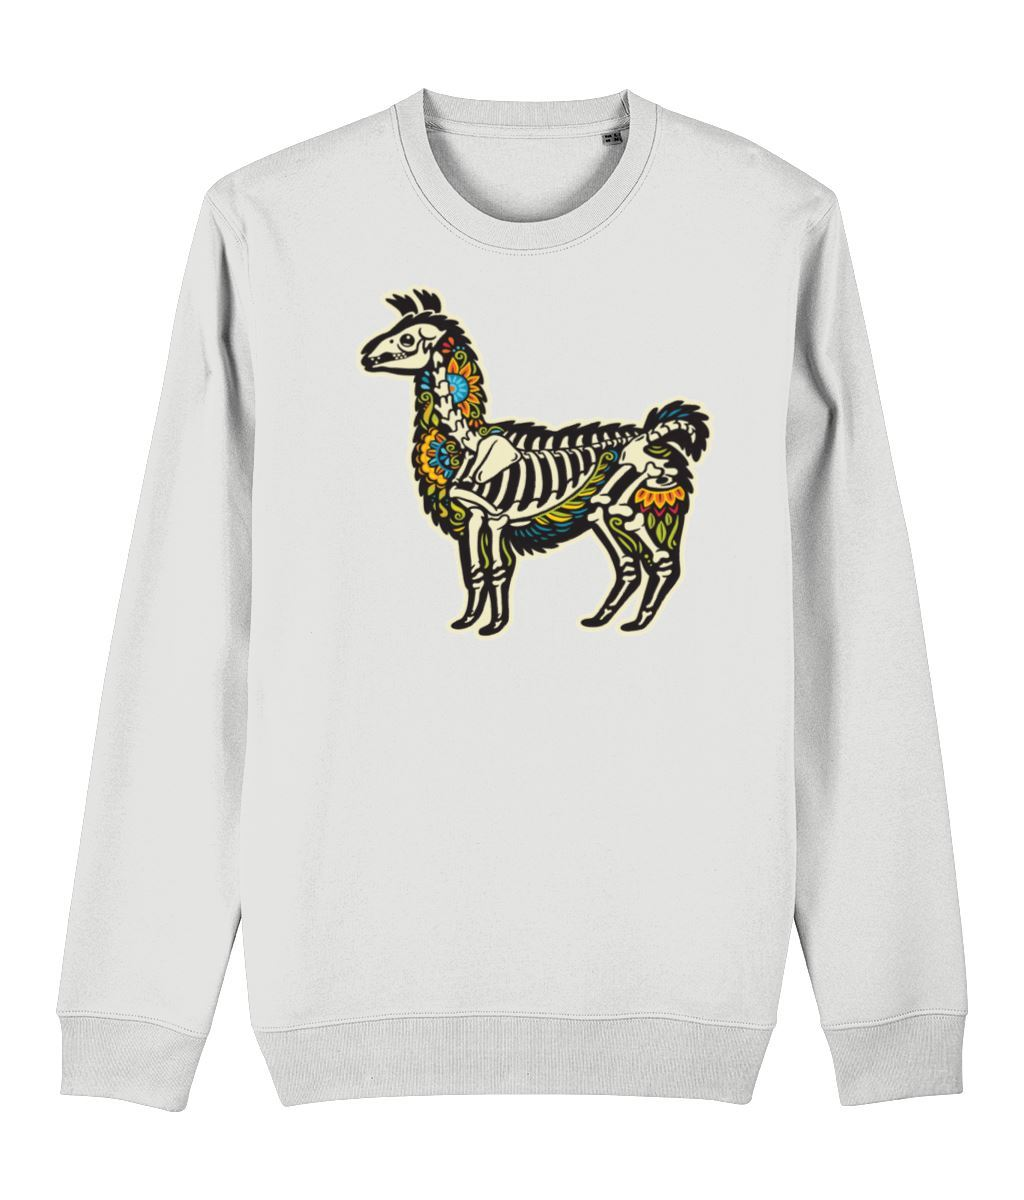 Alpaca skeleton Sweatshirt Clothing IndianBelieves White X-Small